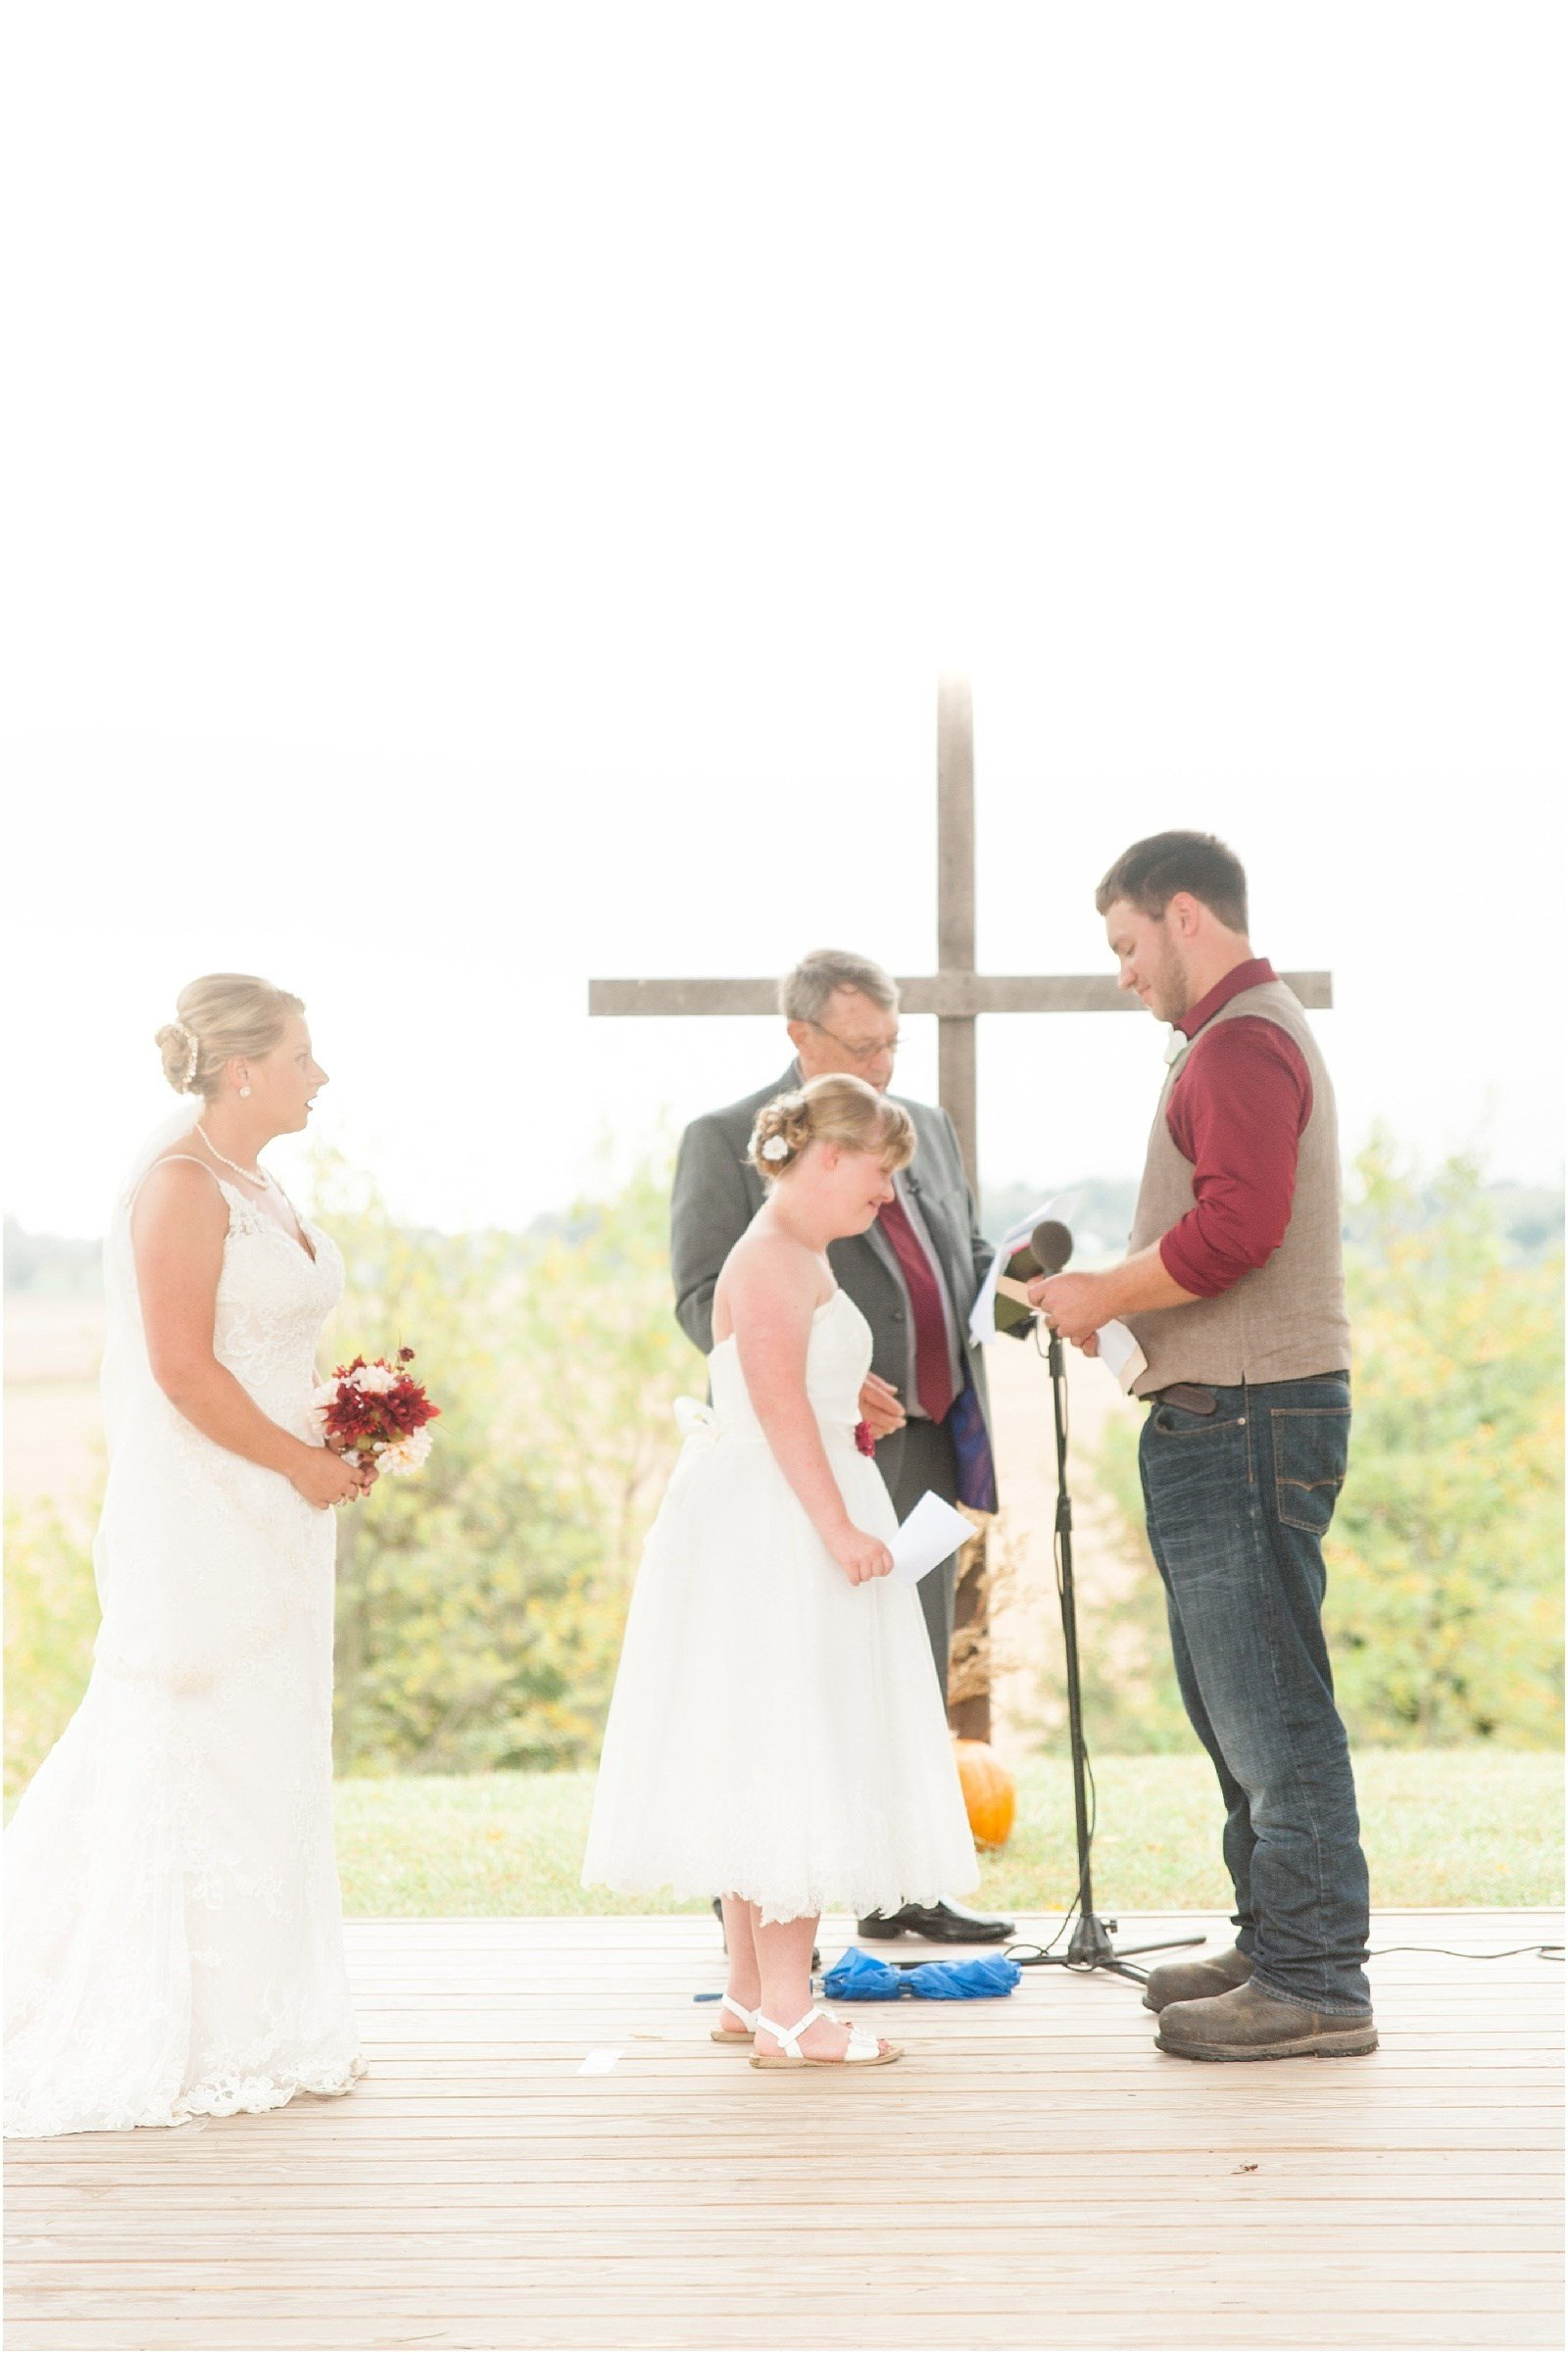 Courtesy Bret and Brandy Photography